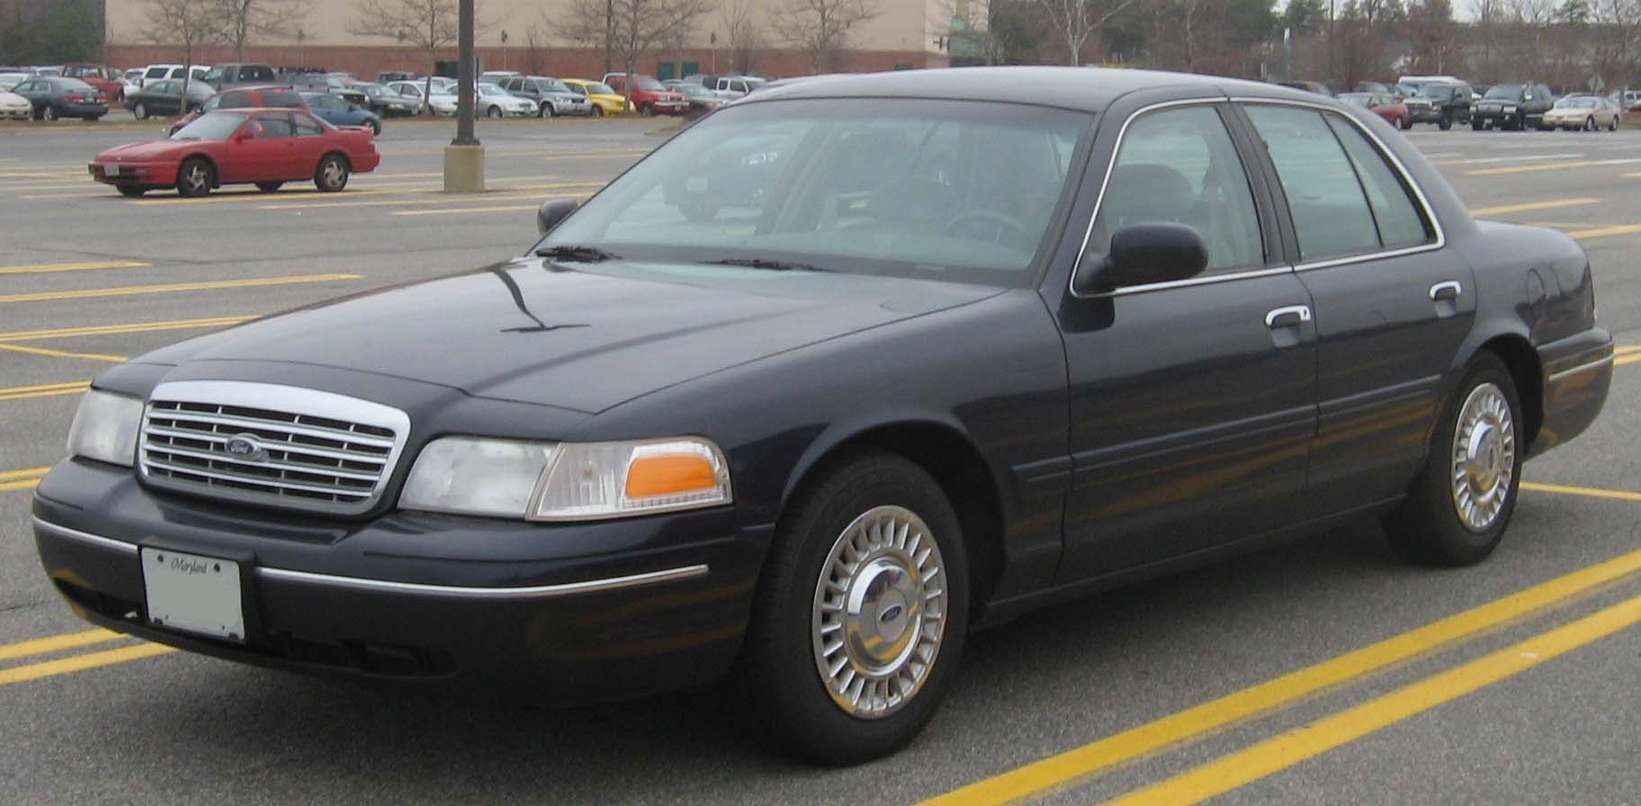 Ford Crown Victoria #8679838